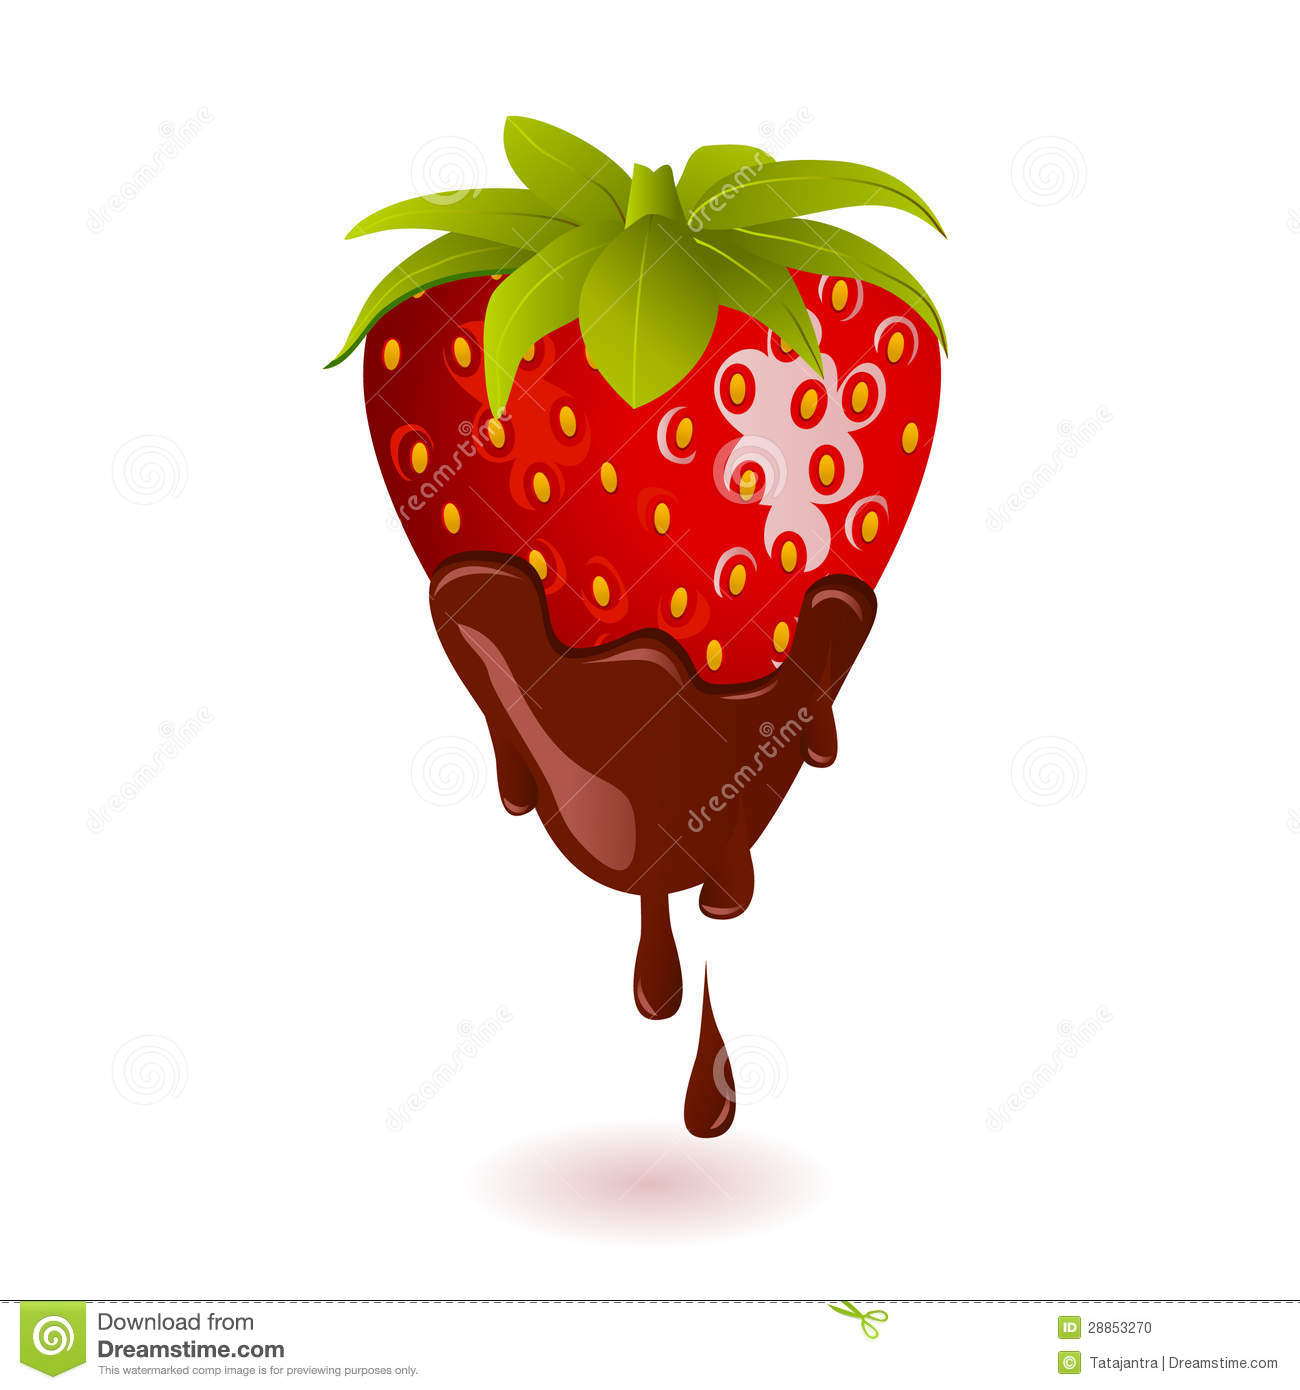 Chocolate dipped strawberries clipart.